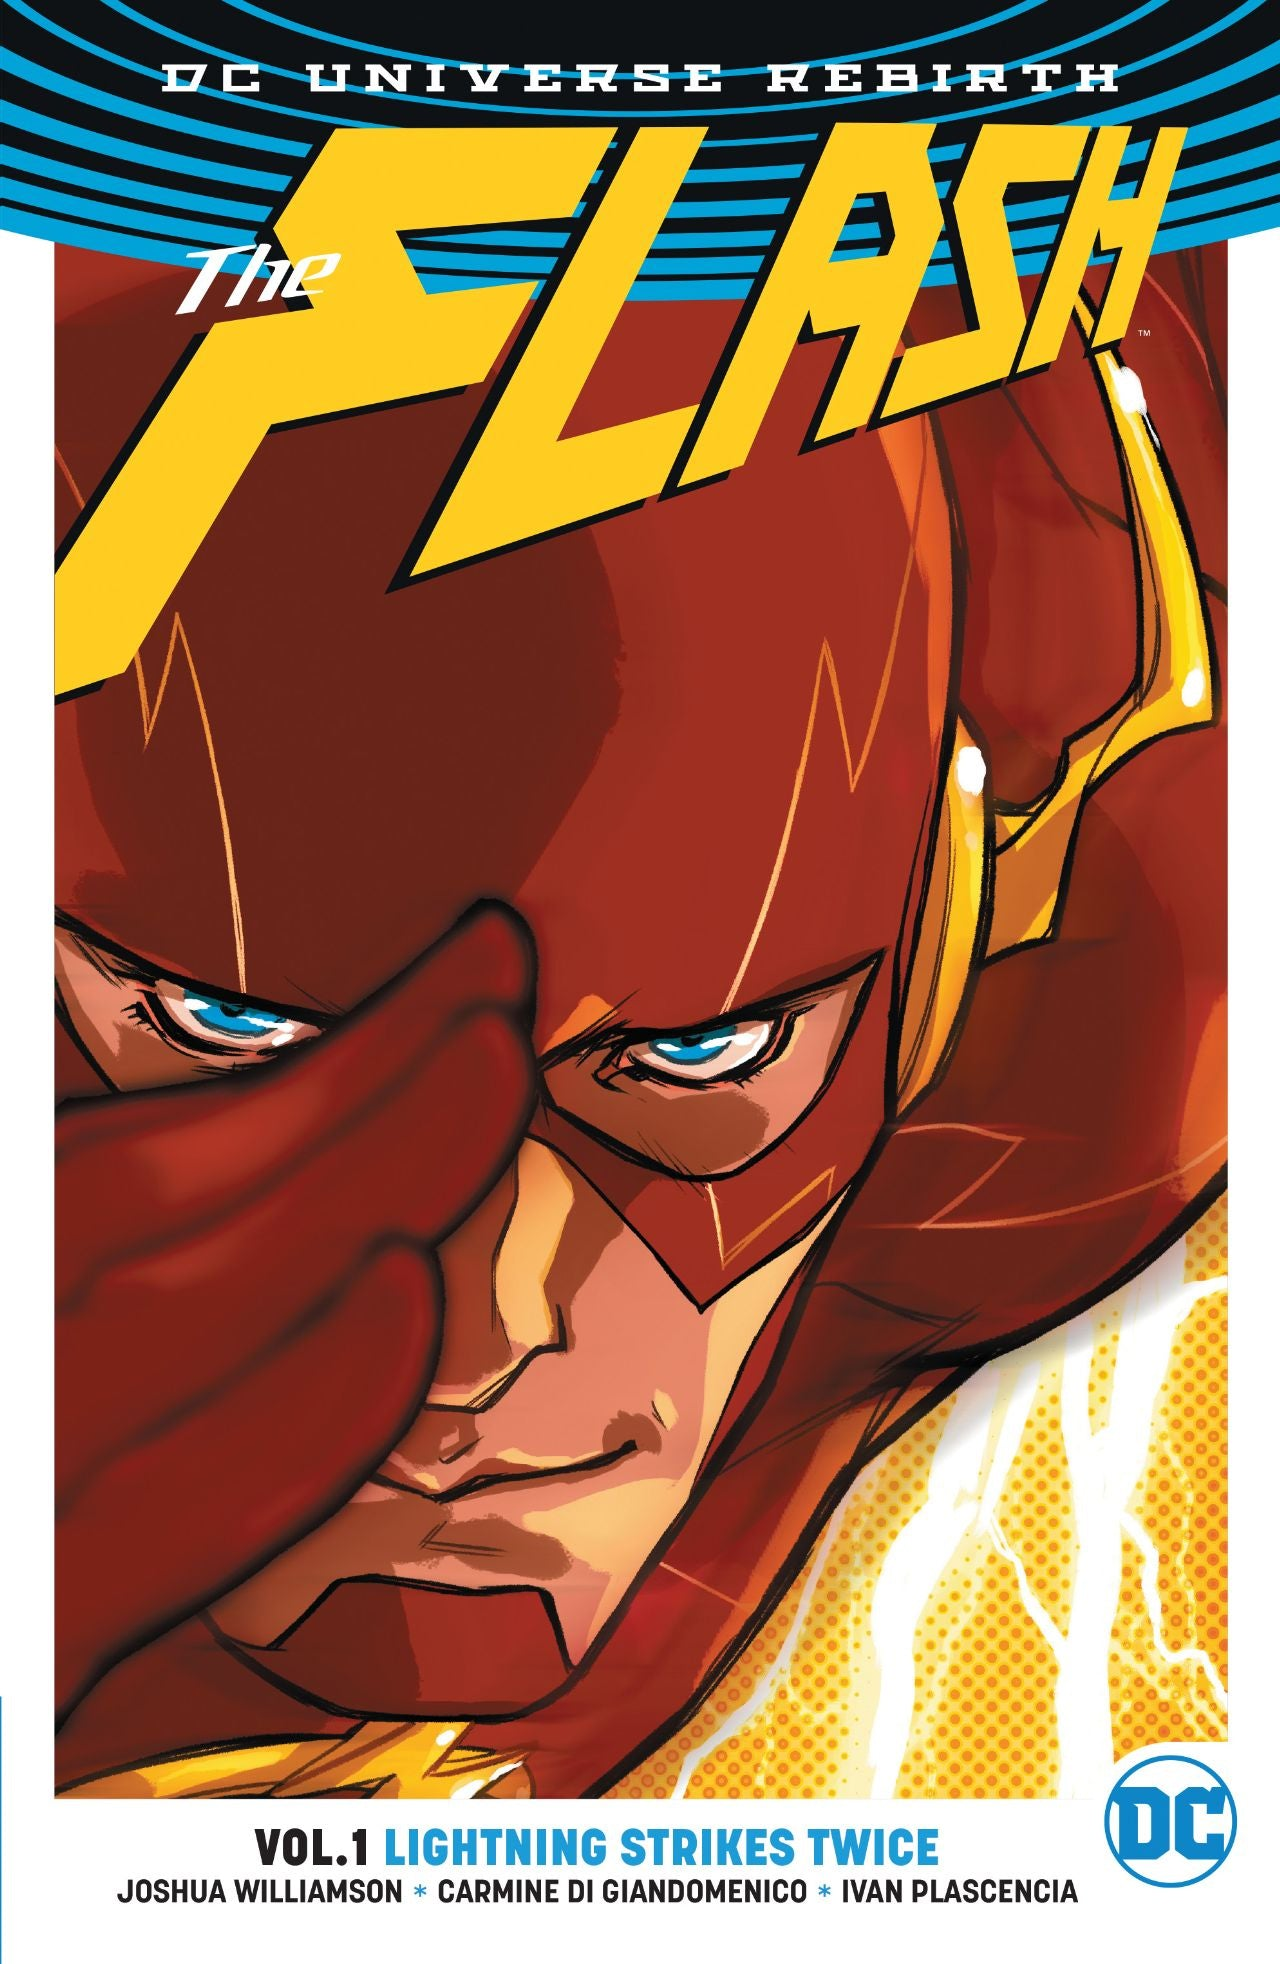 FLASH TP VOL 01 LIGHTNING STRIKES TWICE (REBIRTH) | Game Master's Emporium (The New GME)